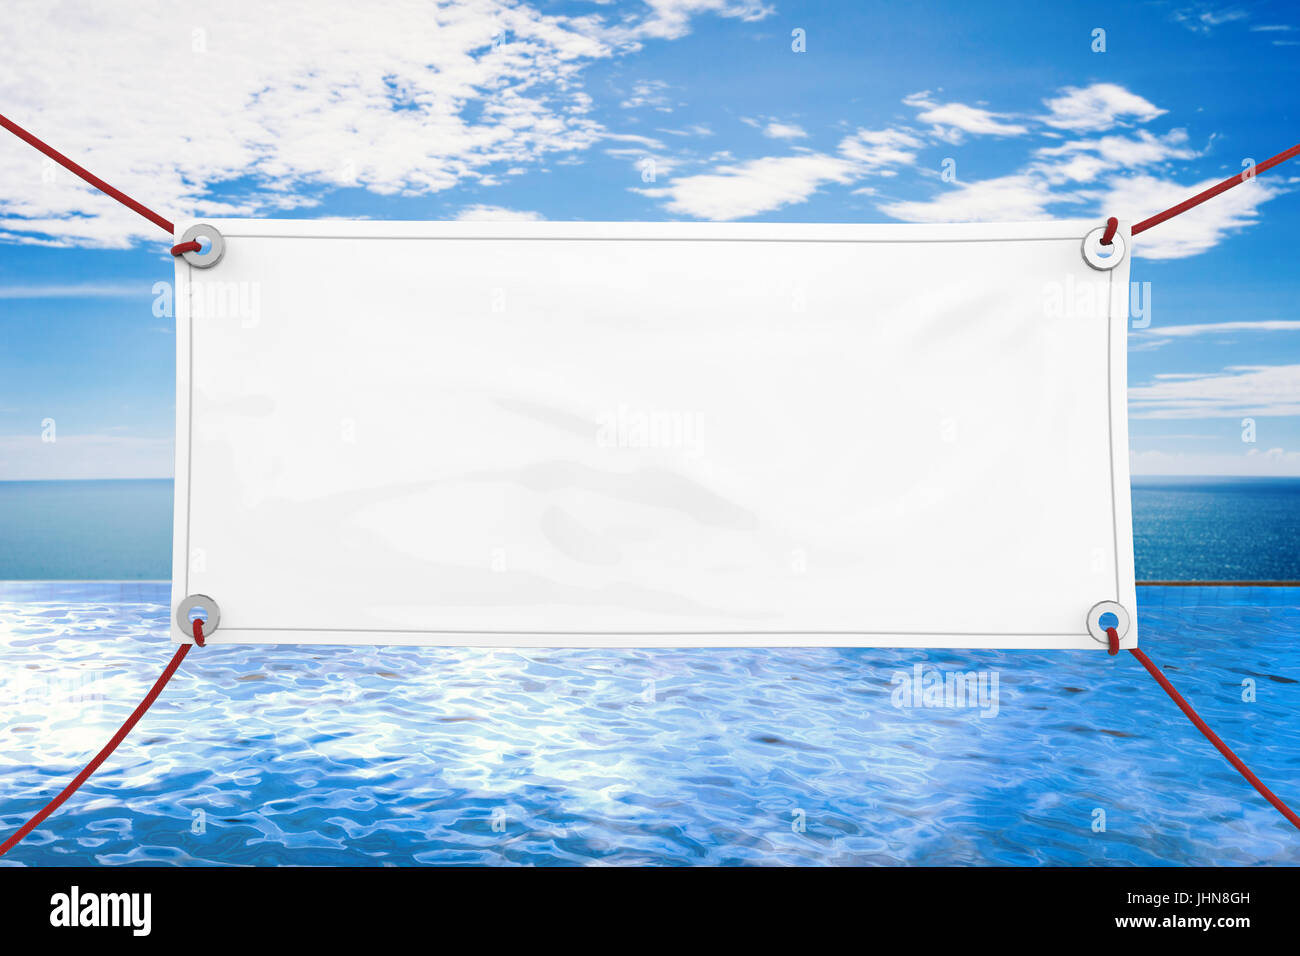 Blank White Vinyl Banner Hanging With Rope Stock Photo Royalty - Blank vinyl banners